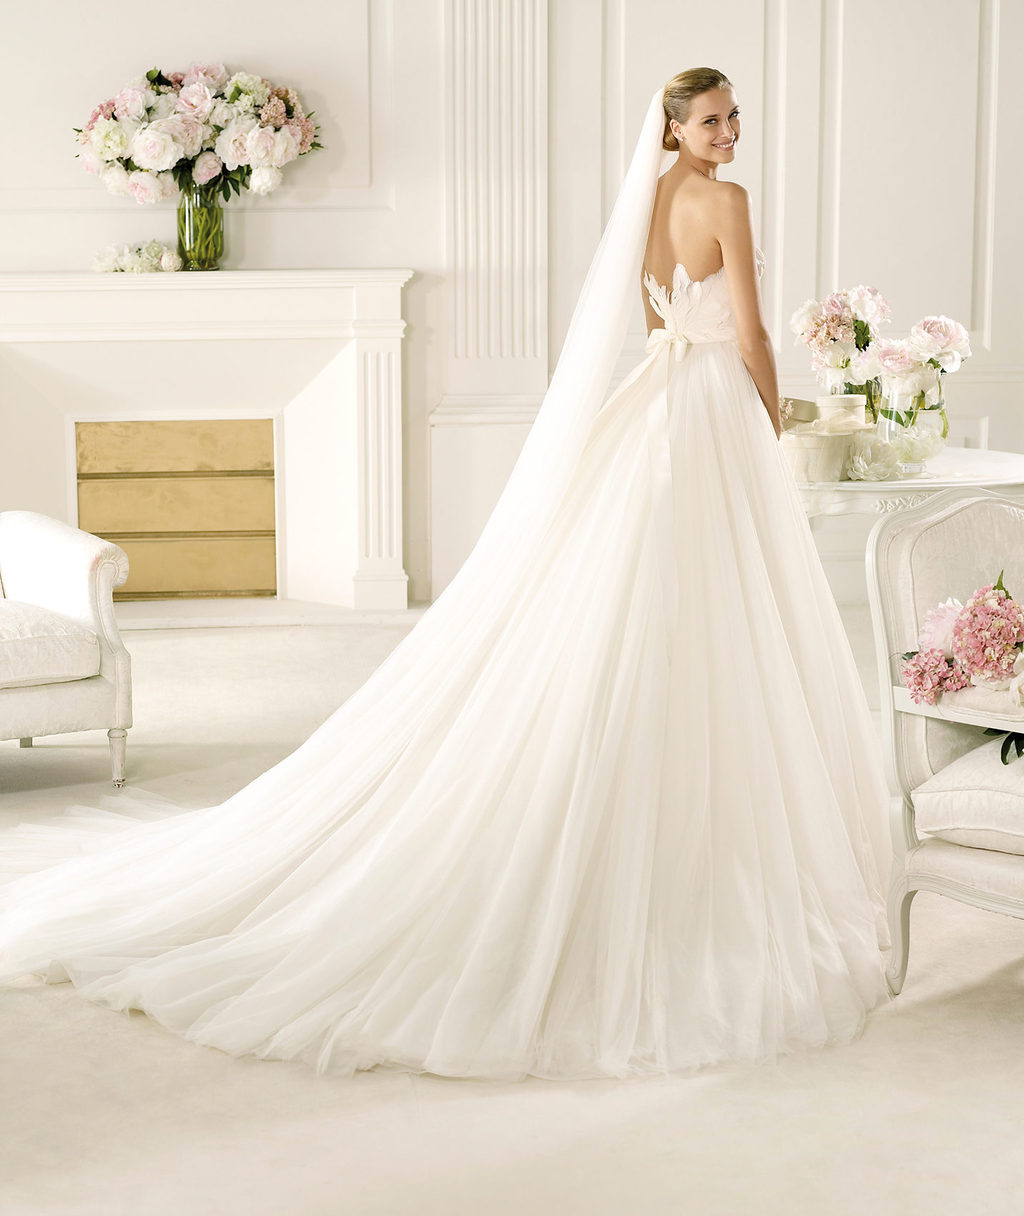 Feather back wedding dress by Pronovias 2013 bridal Primor